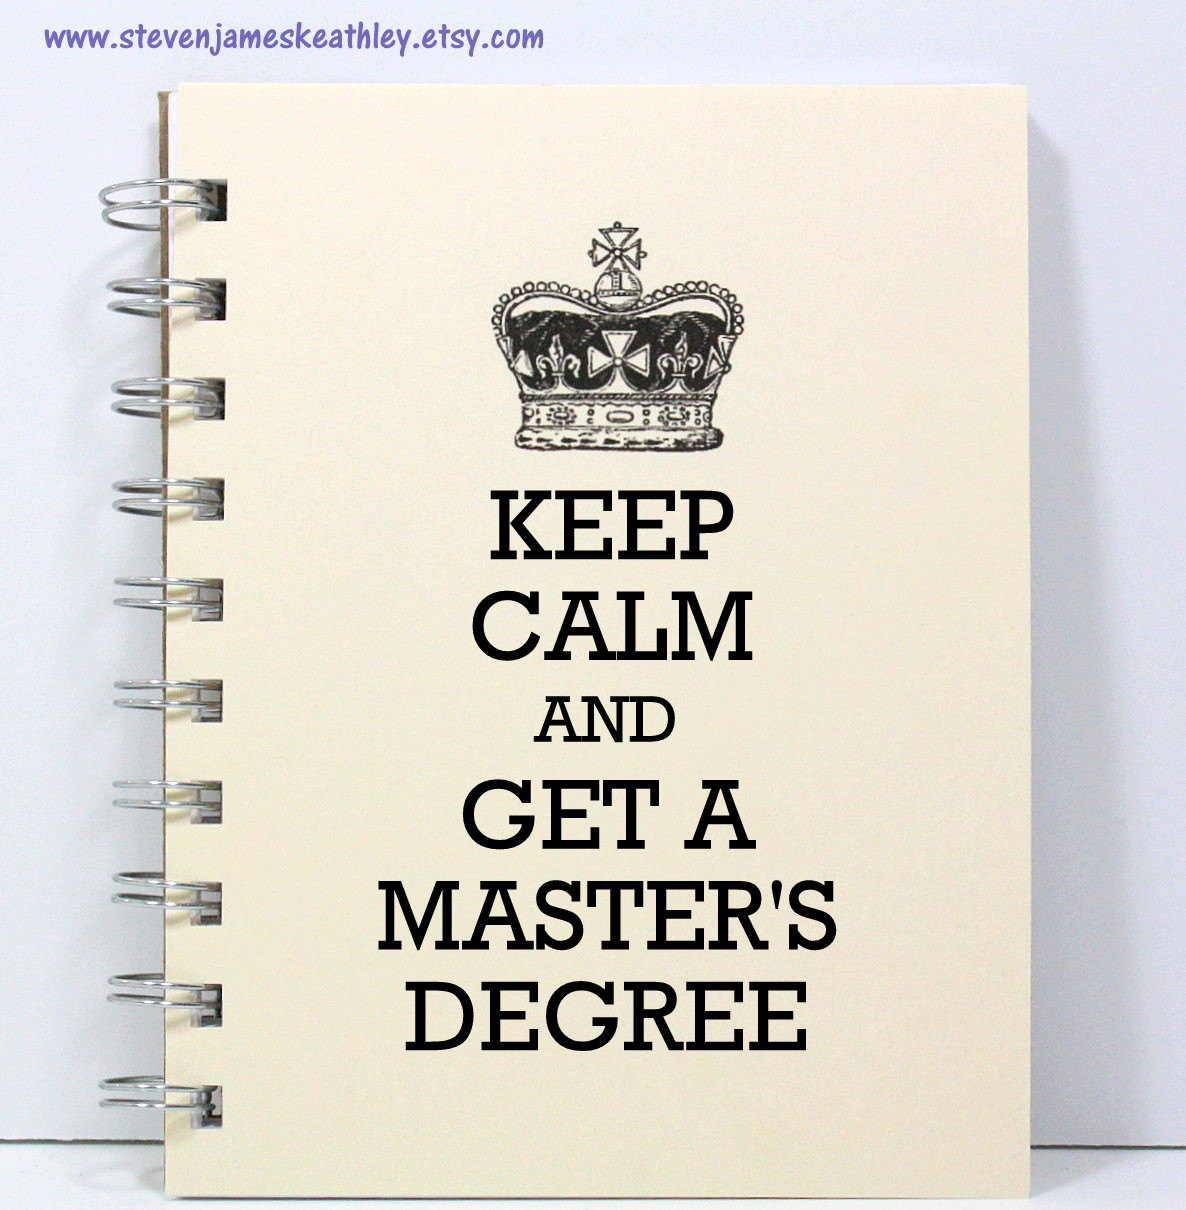 Maters clipart bachelor's degree Degree Degree Download Art Masters